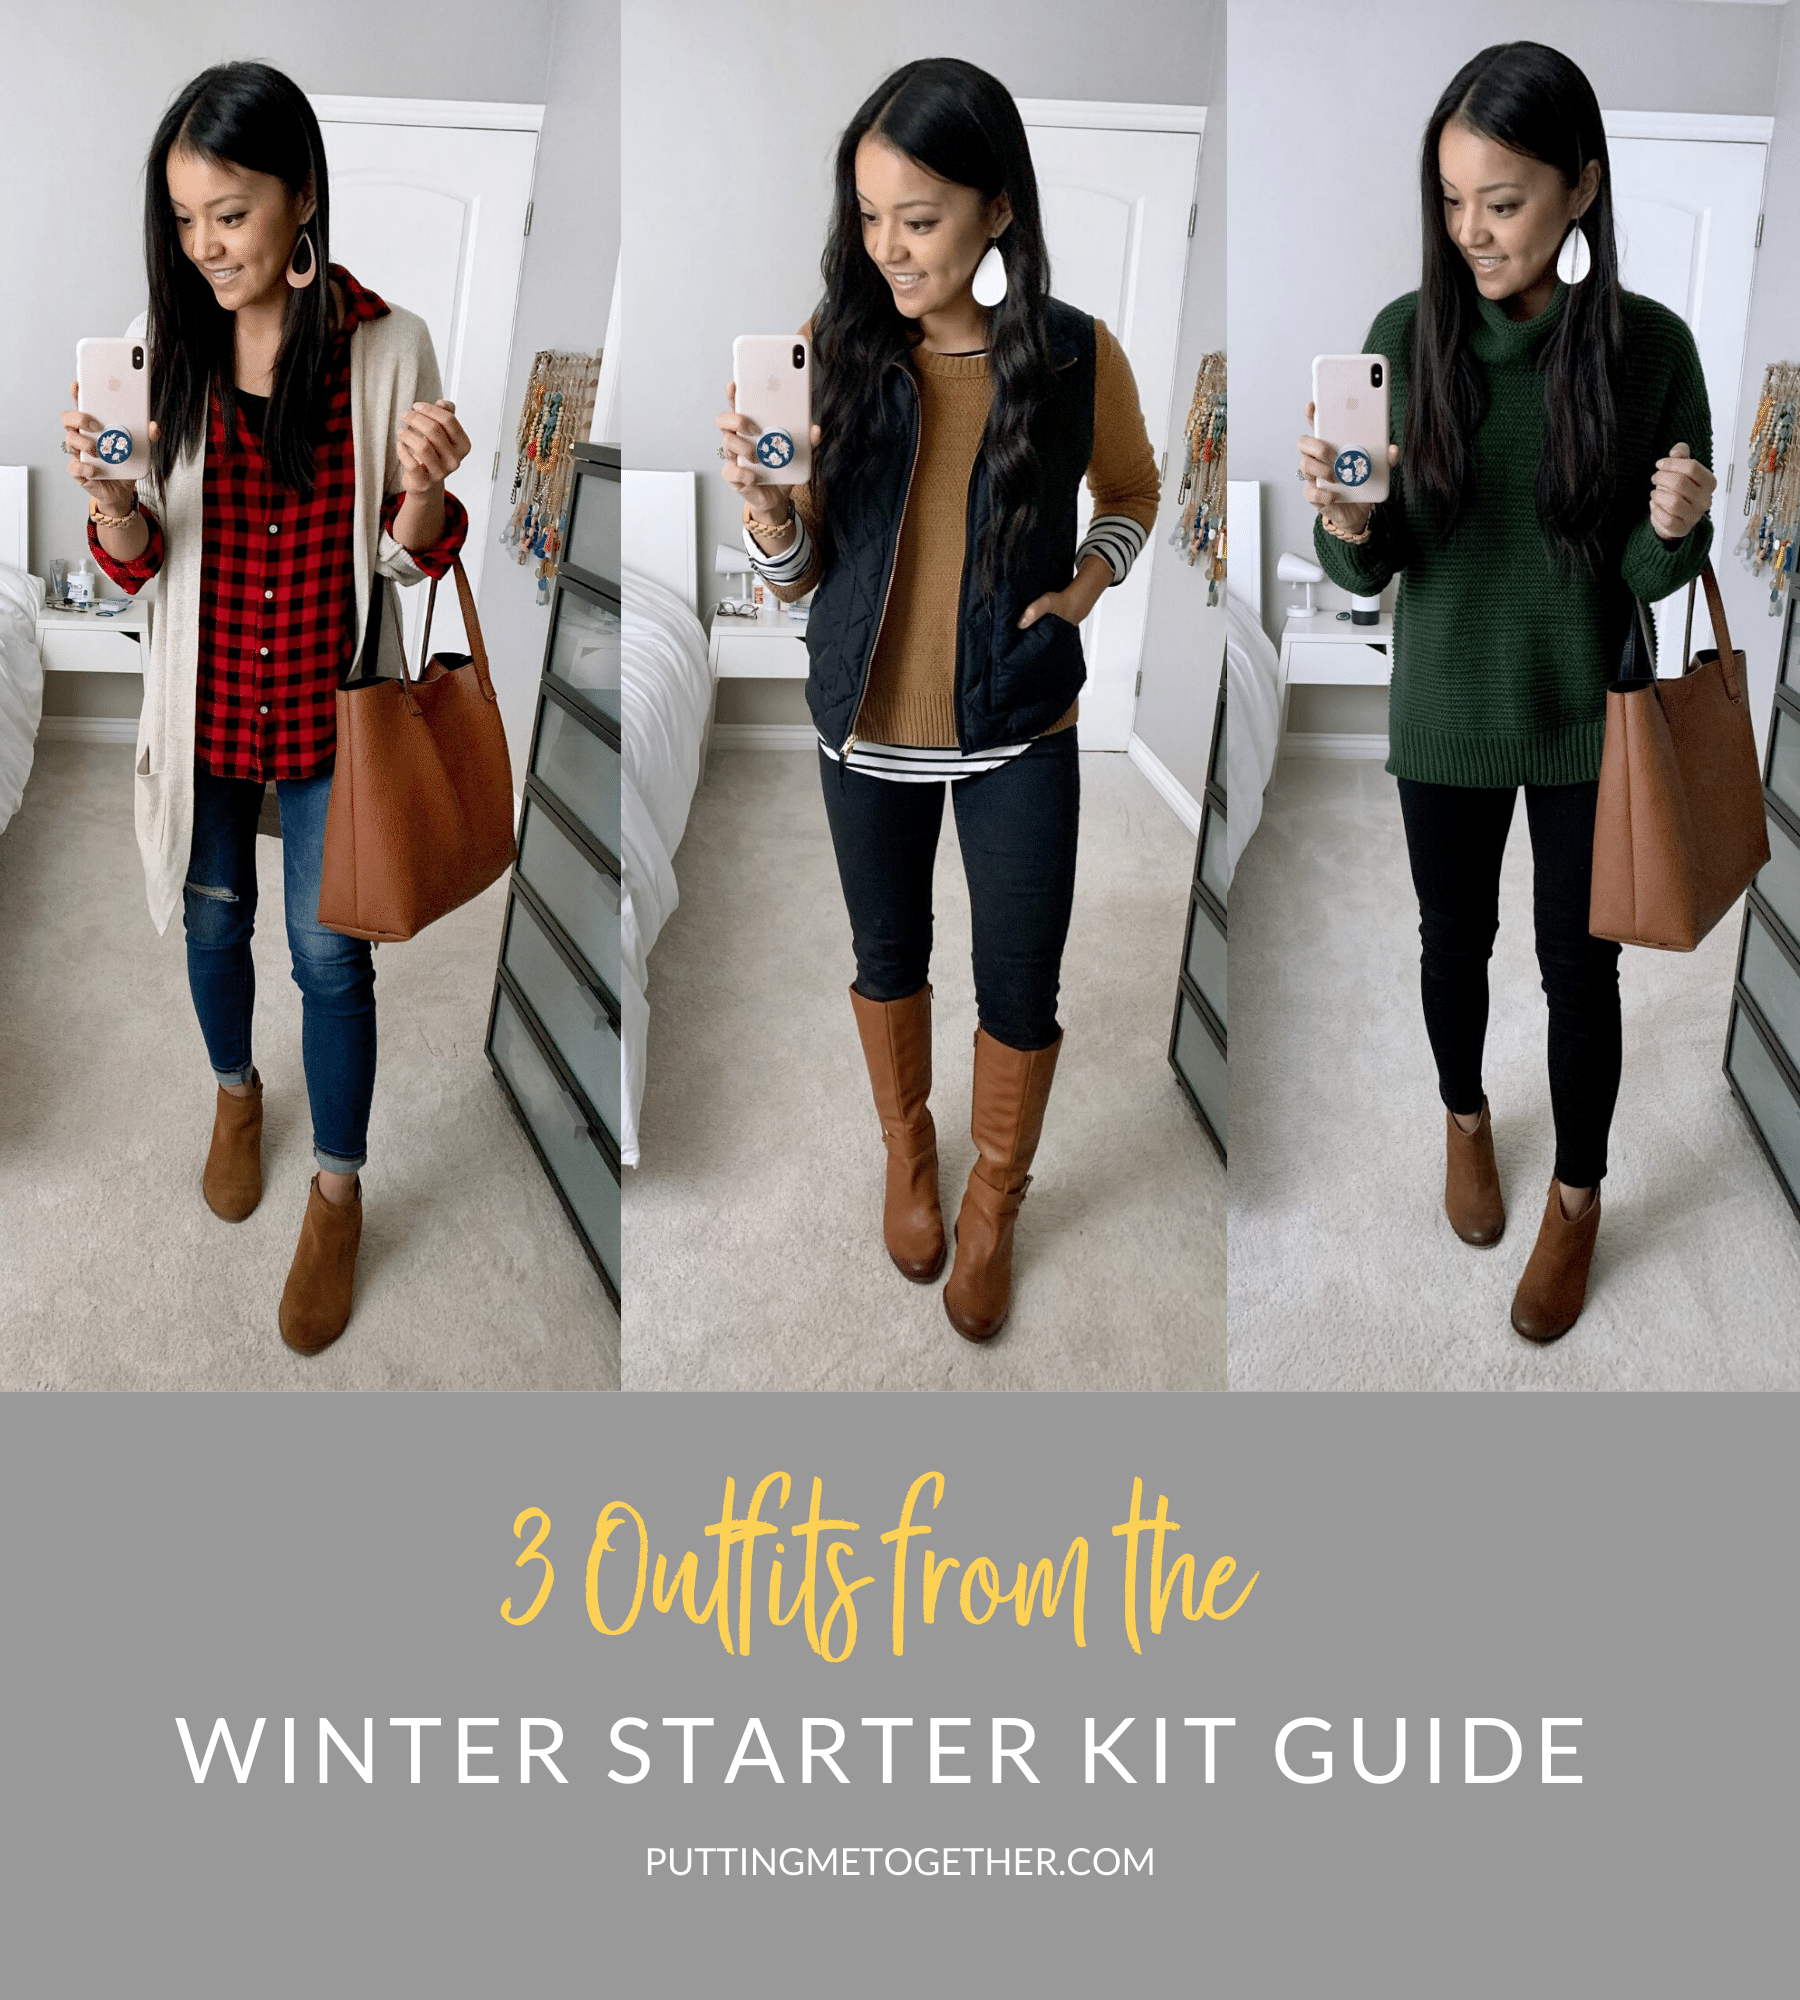 3 Casual Winter Outfits From The Winter Starter Kit Wardrobe Guide